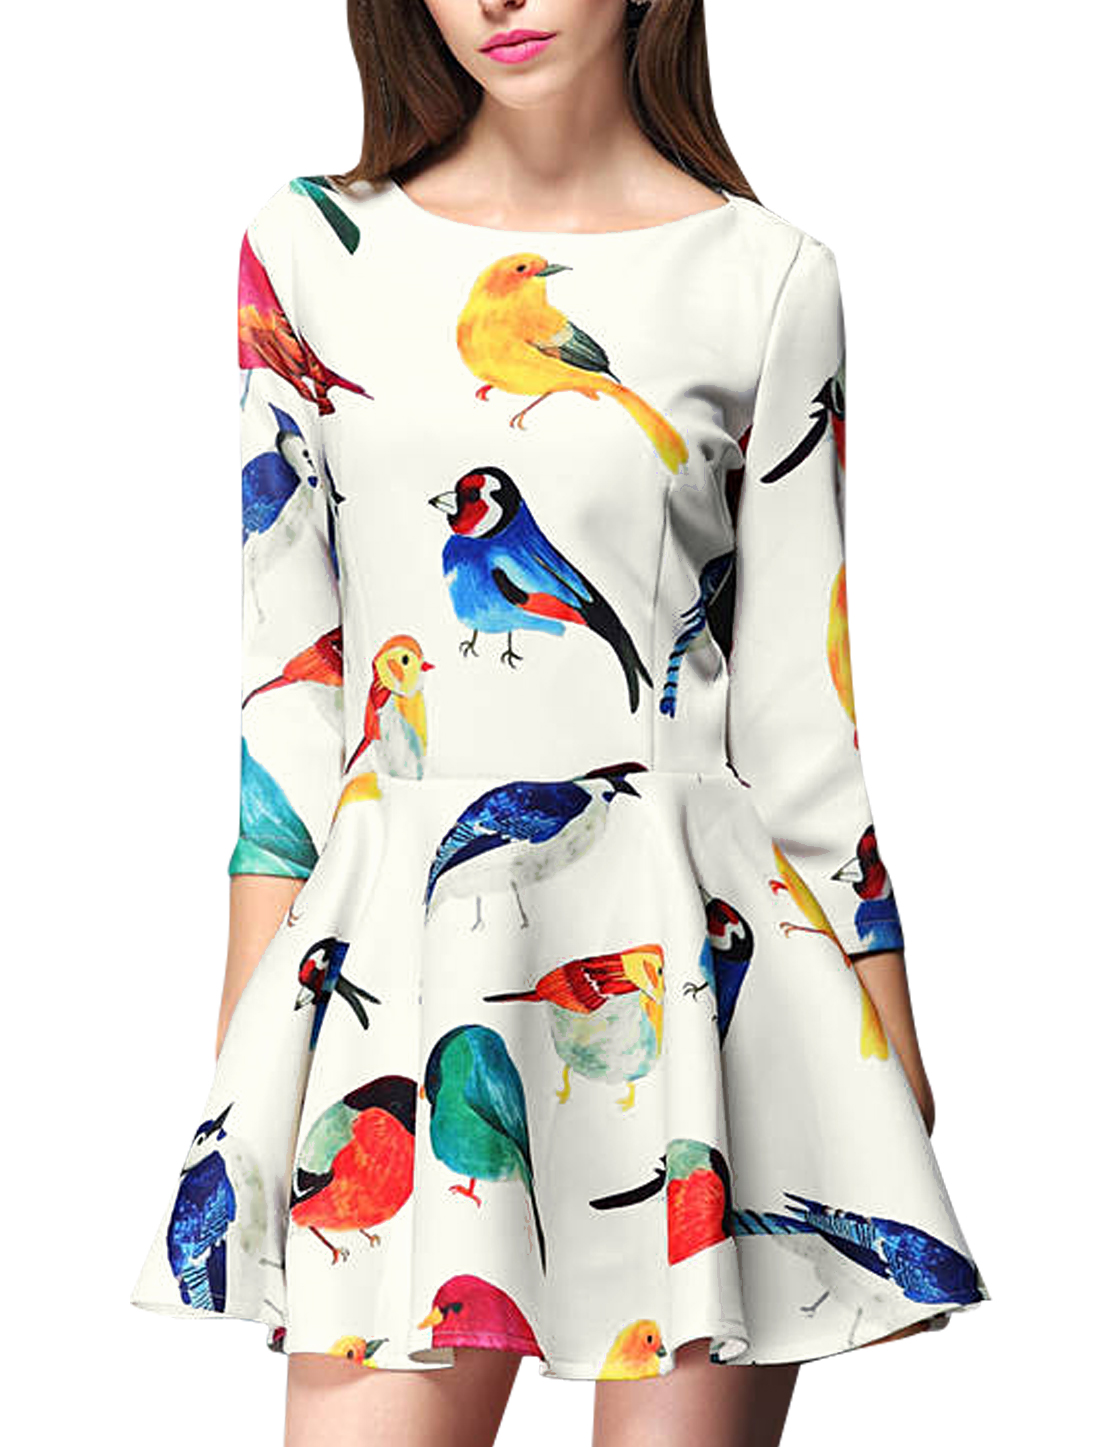 Lady Casual 3/4 Sleeve Zip Back Birds Prints Skater Dress White L